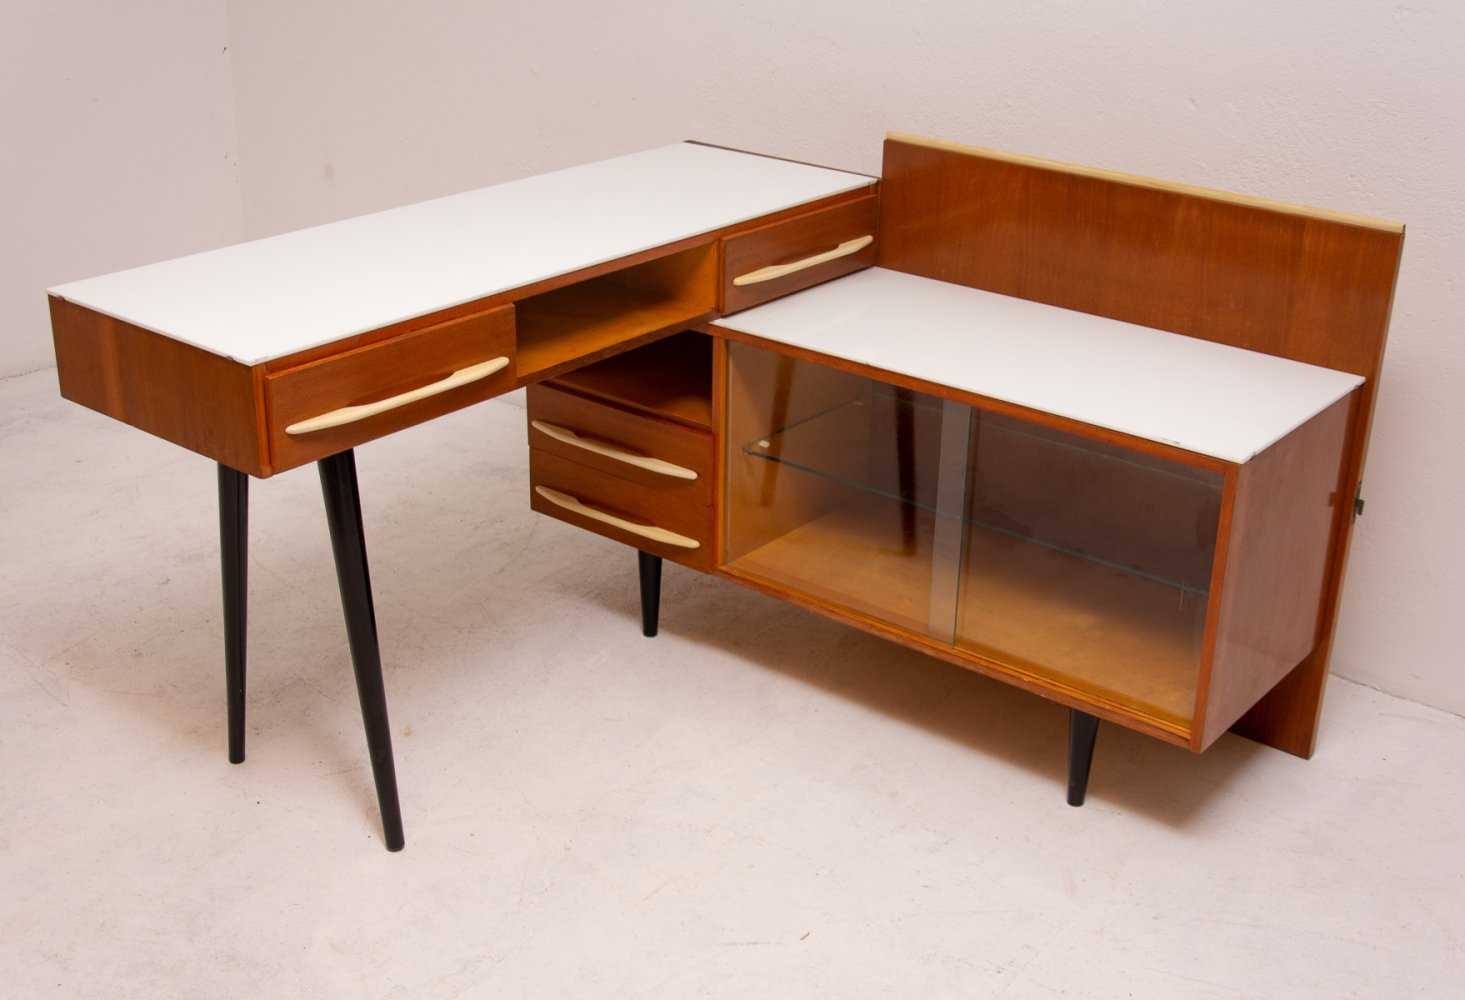 Midcentury corner writing desk with a small bookcase by M. Požár for ÚP Závody